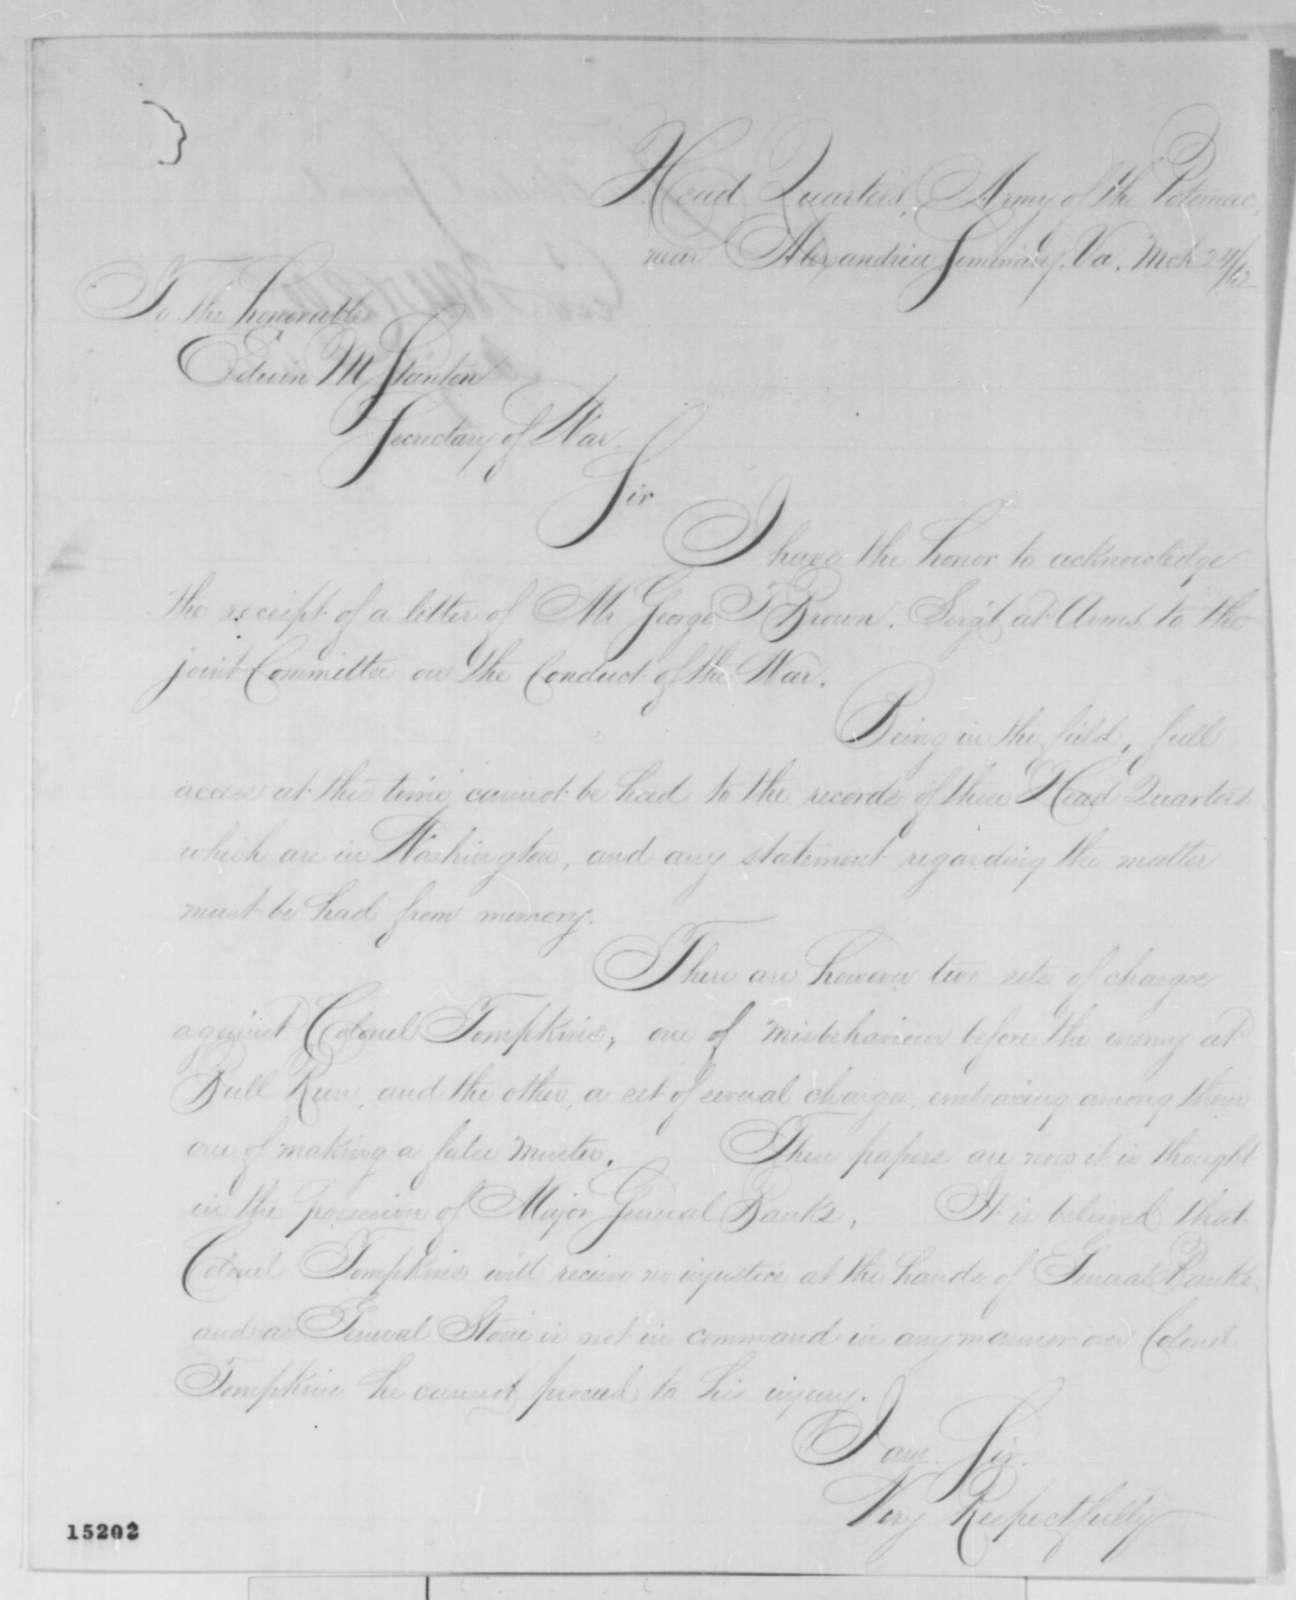 George B. McClellan to Edwin M. Stanton, Monday, March 24, 1862  (Charges against Col. Tompkins; endorsed by Stanton, March 28, 1862)